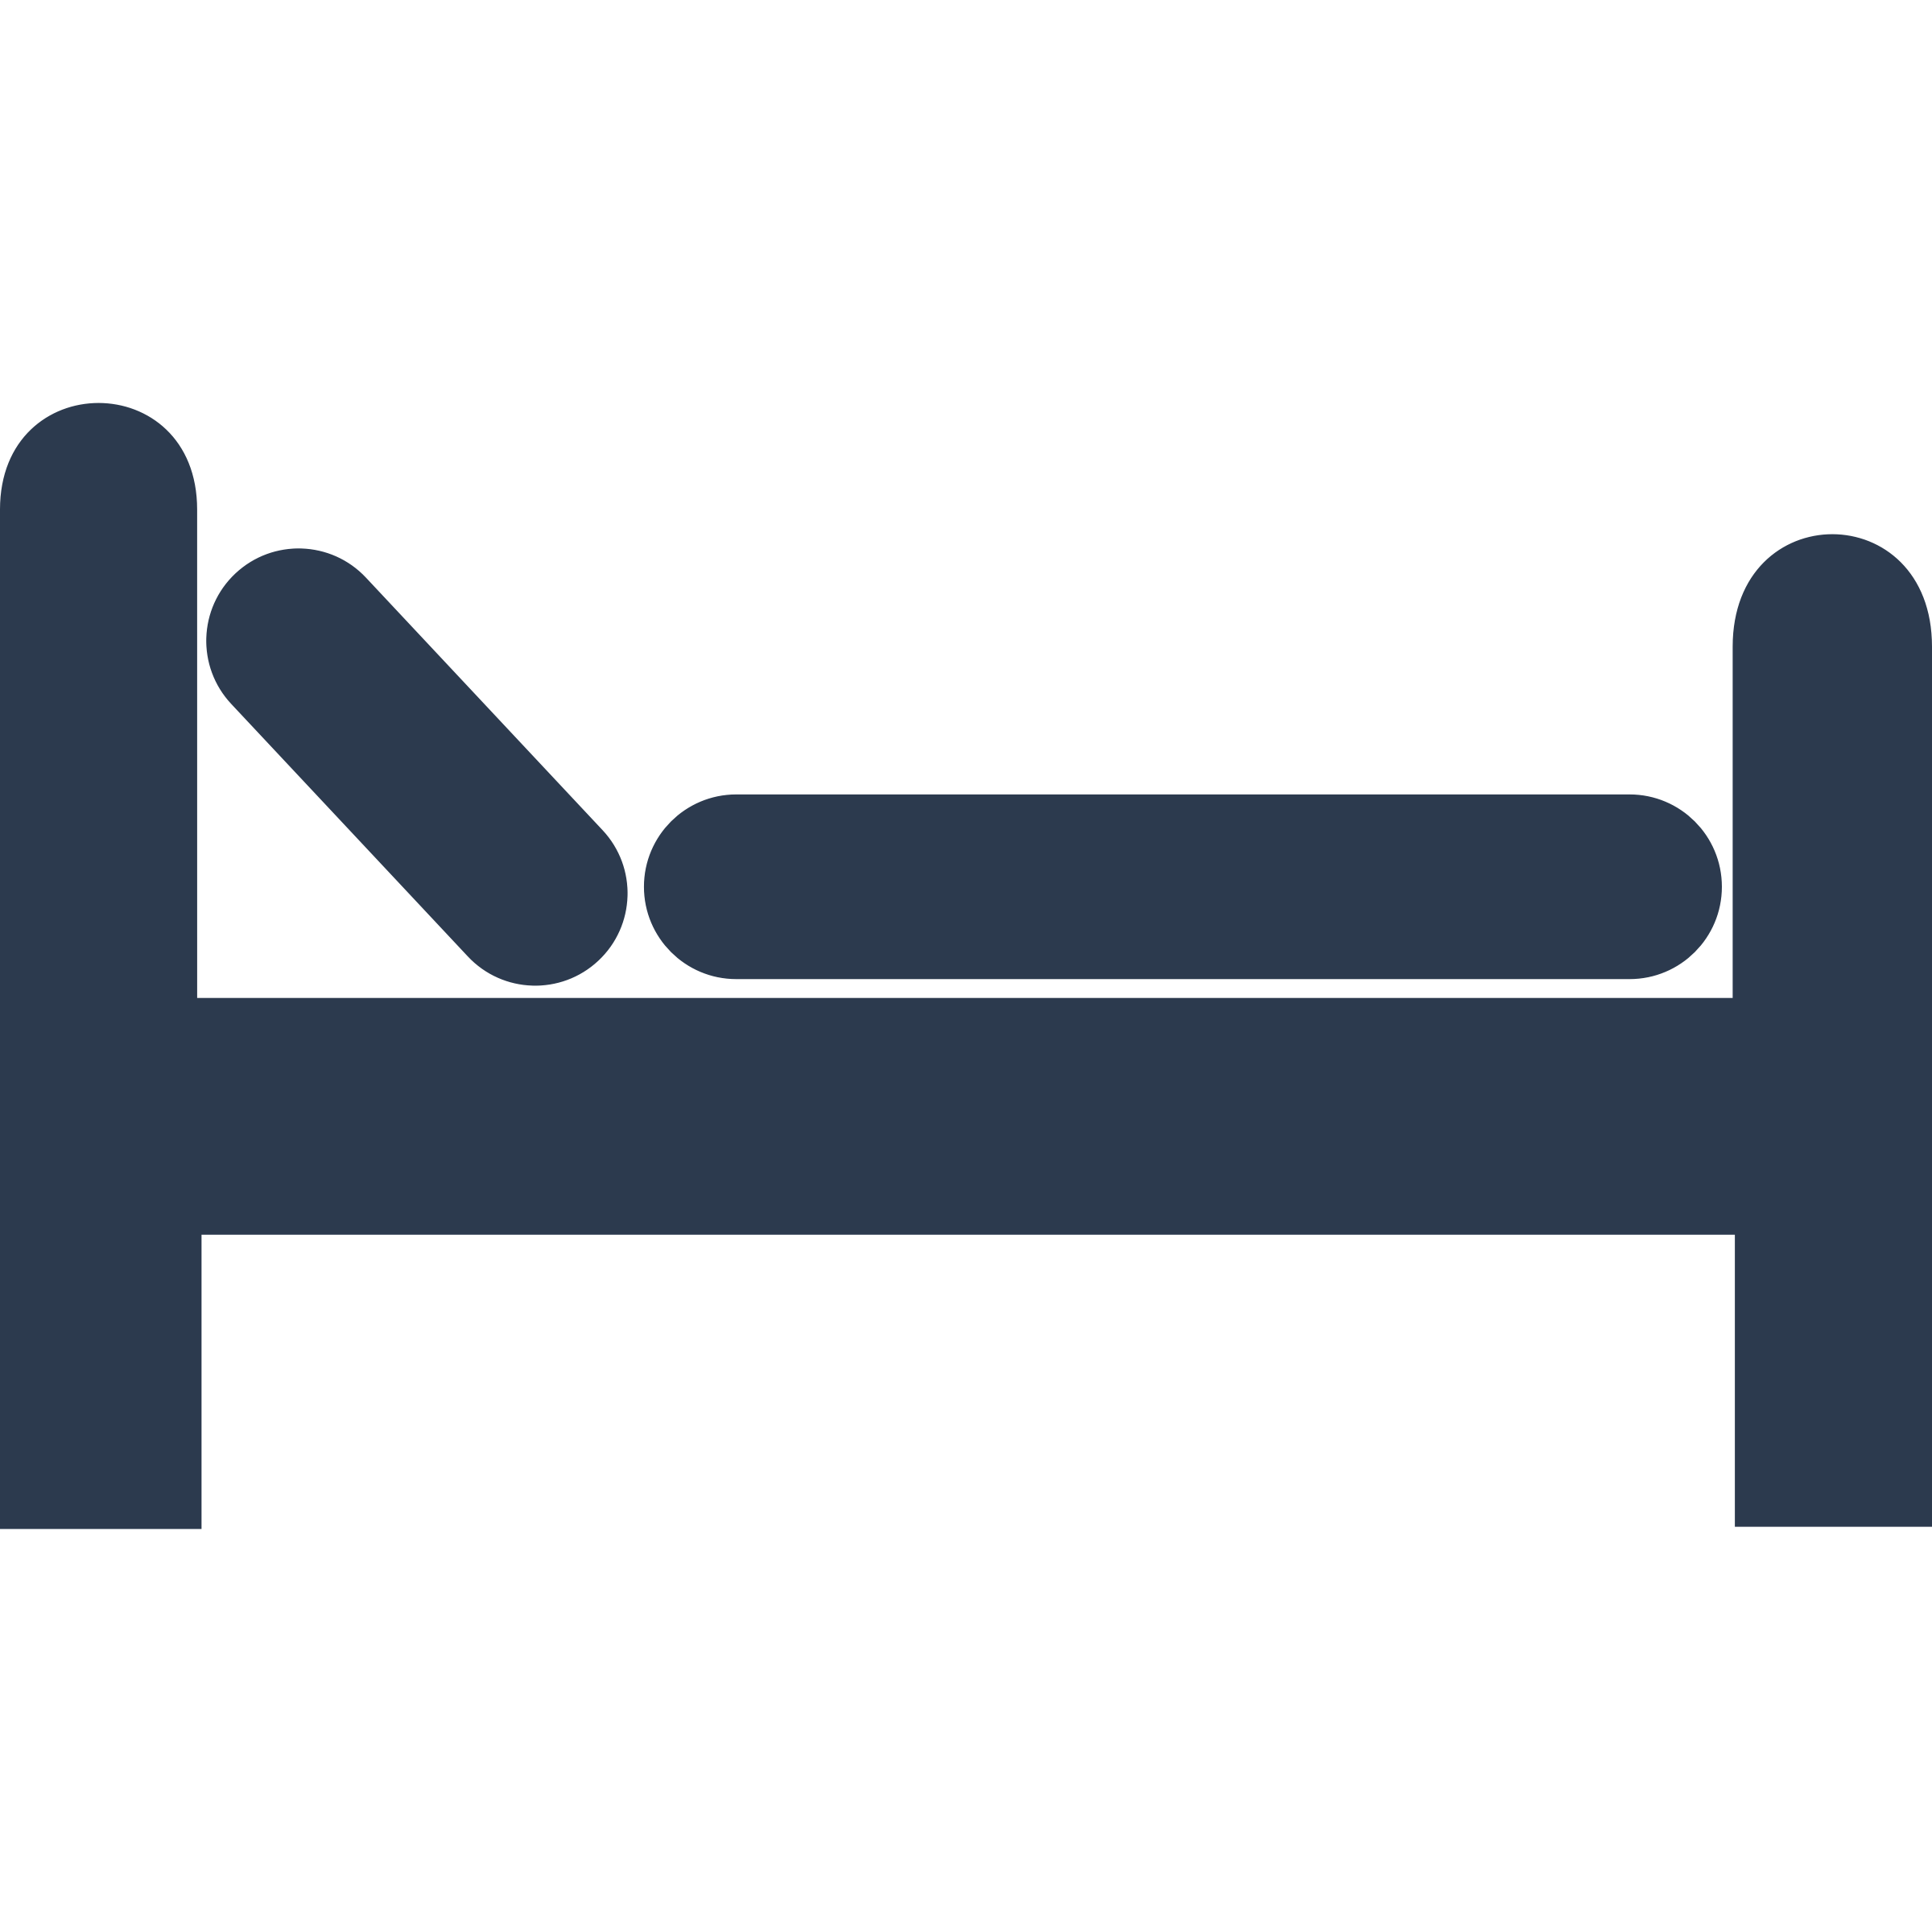 Free clip art hillary. Bed clipart simple